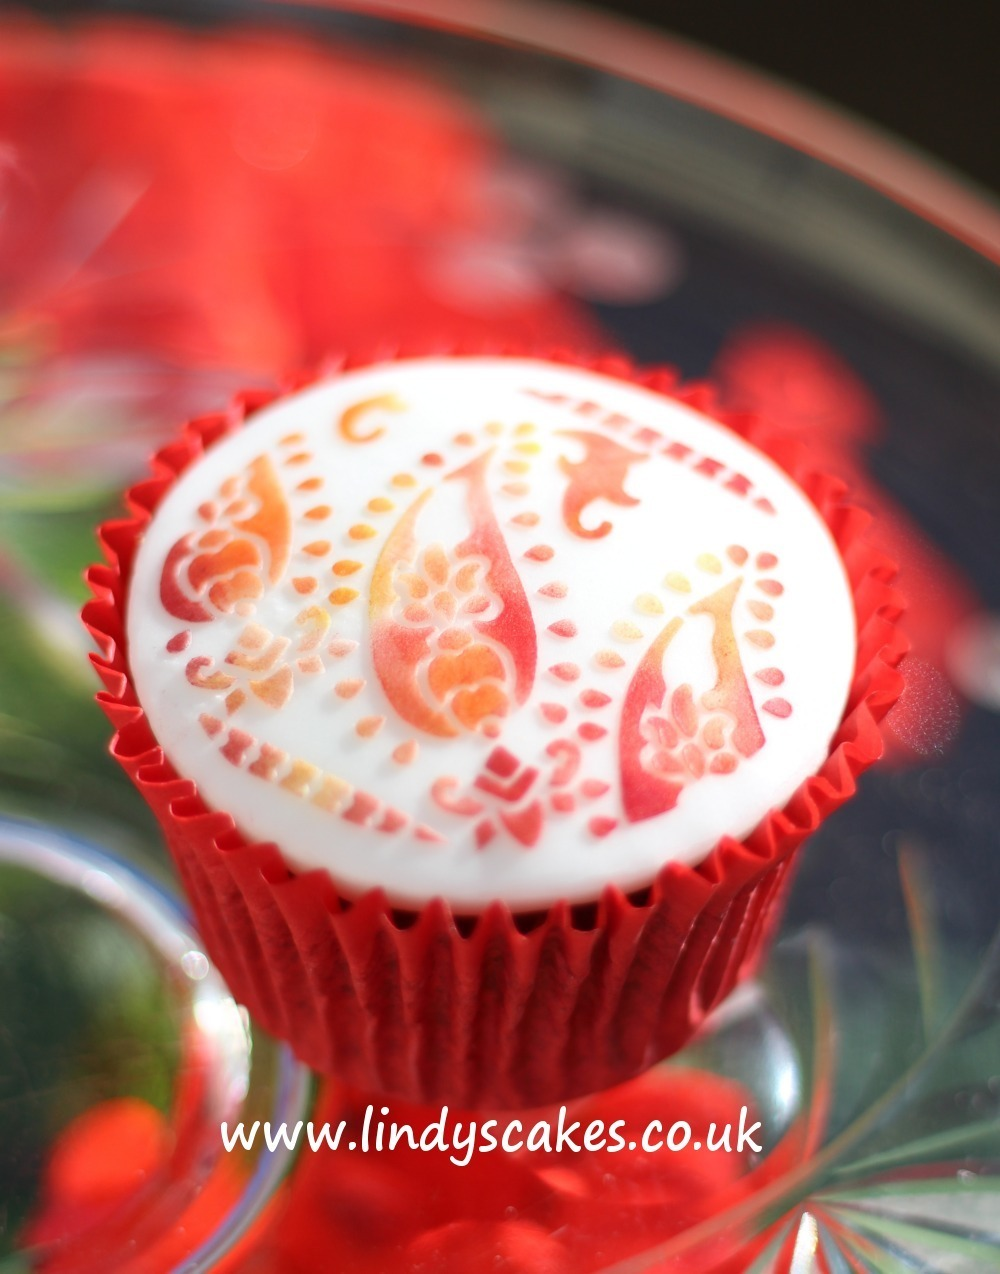 paisley cupcake stencil decorated with colourful edible dusts